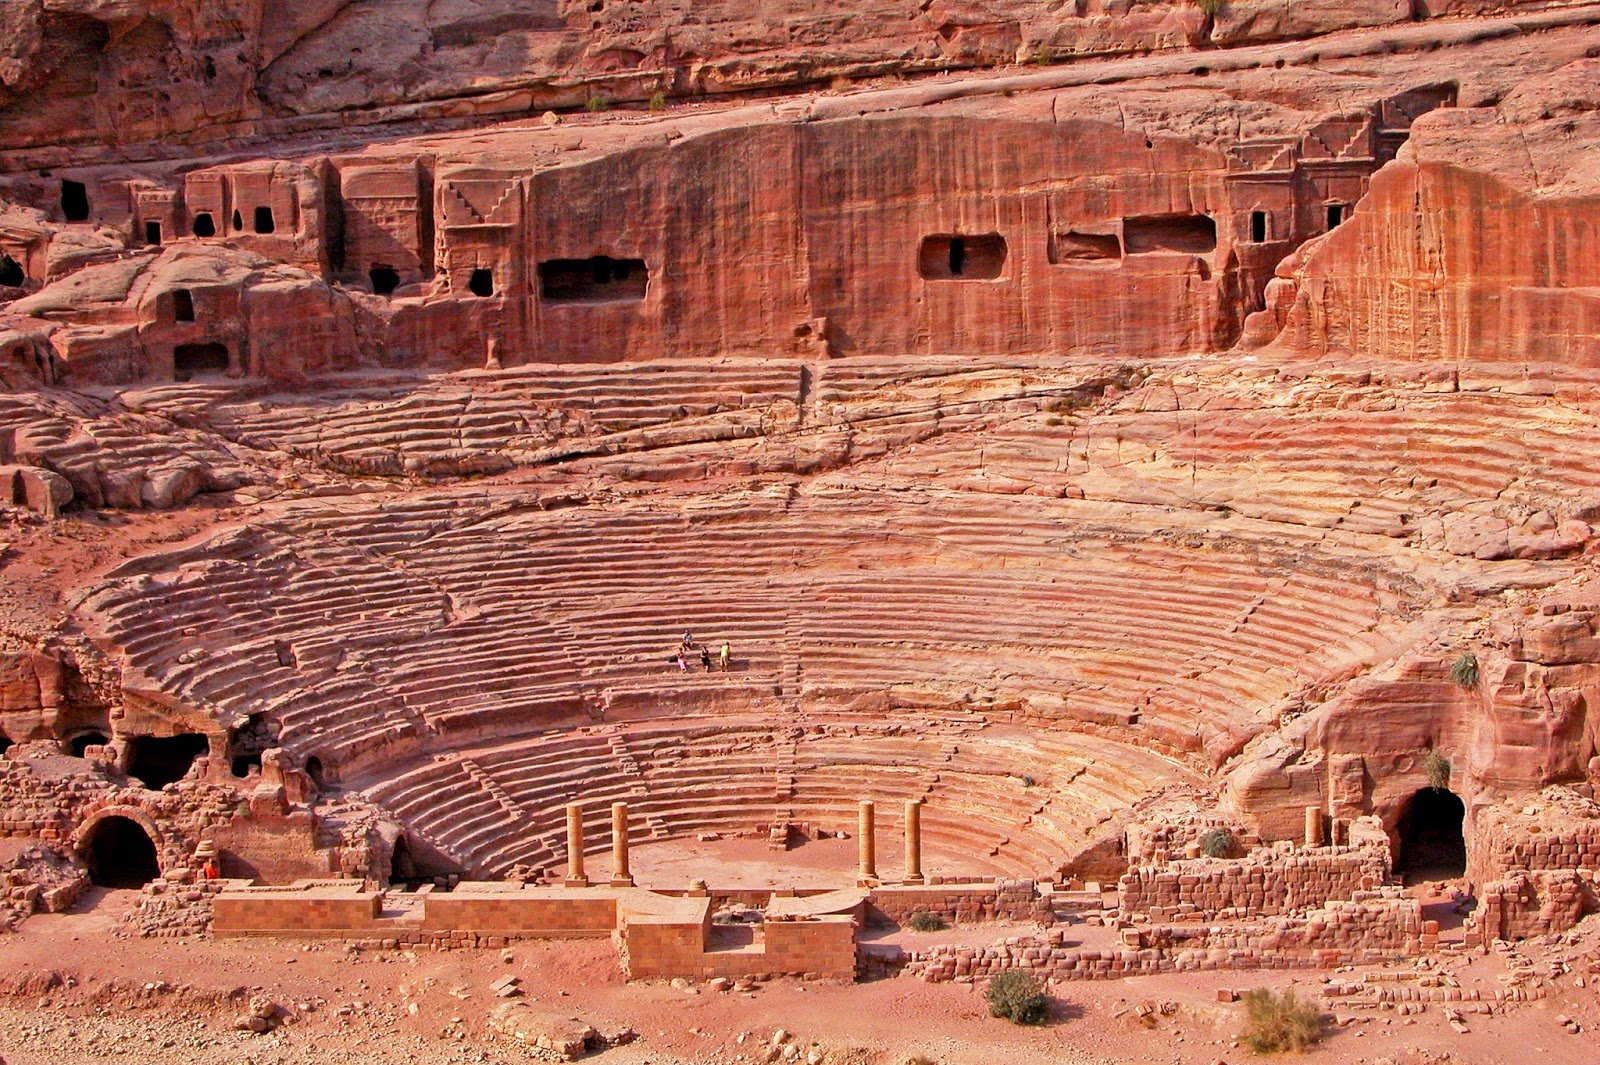 Roman Amphitheatre Image Source: Wikimedia Commons